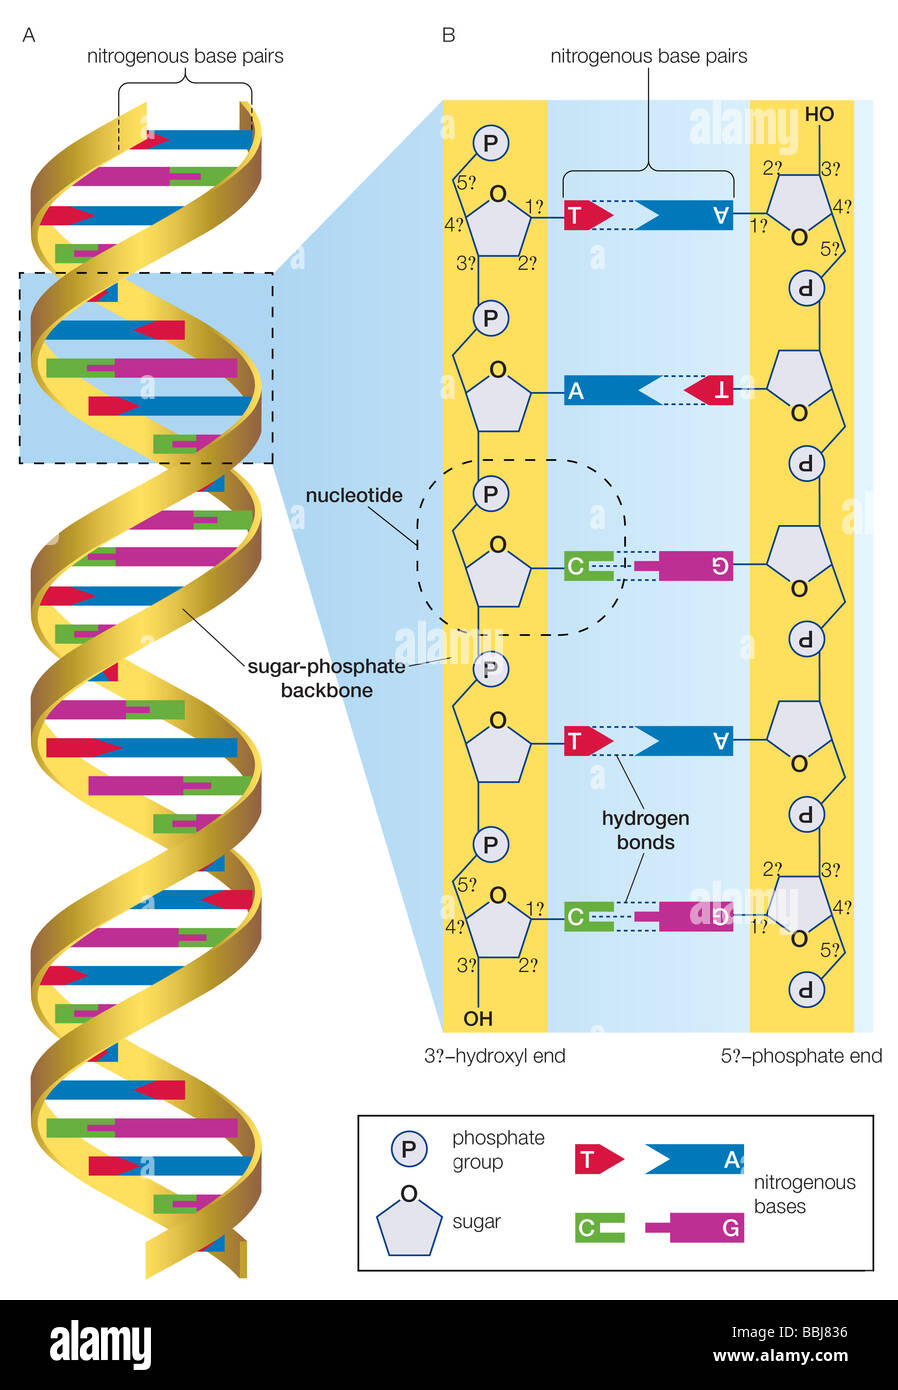 Dna Molecule And Detailed View Illustrating Nucleotides